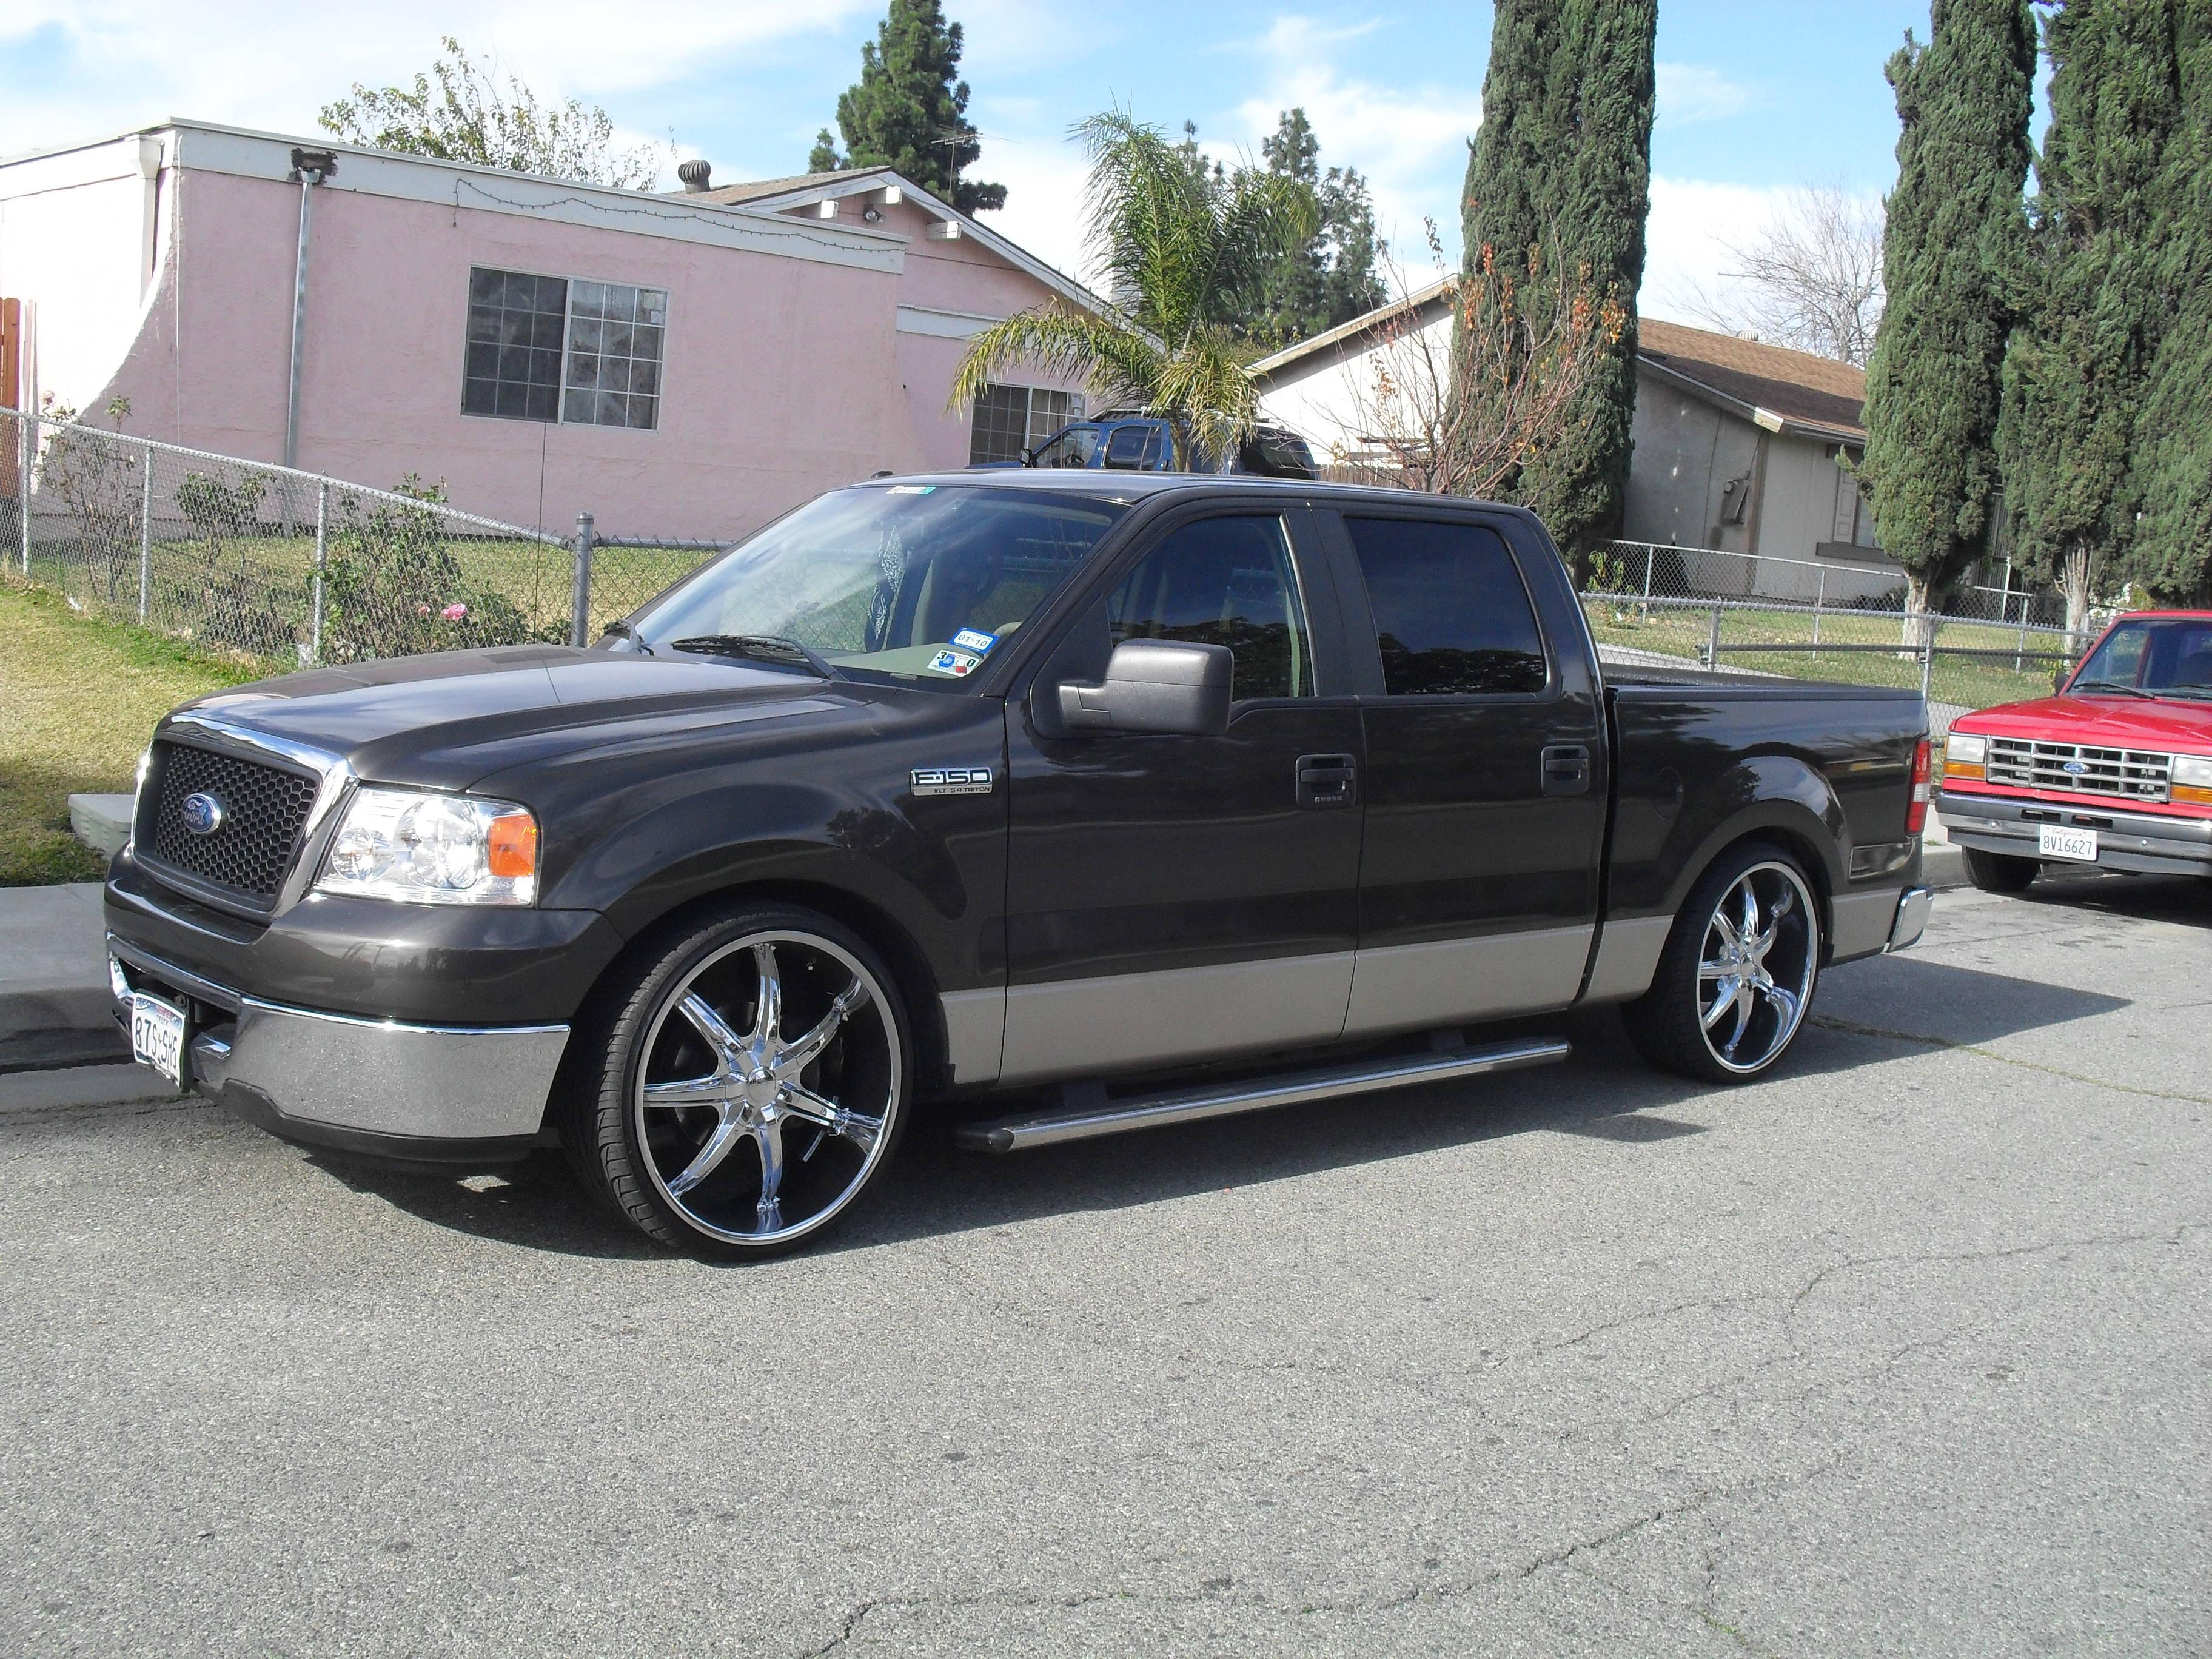 Tuning Ford F 150 Crew Cab 2006 Online Accessories And